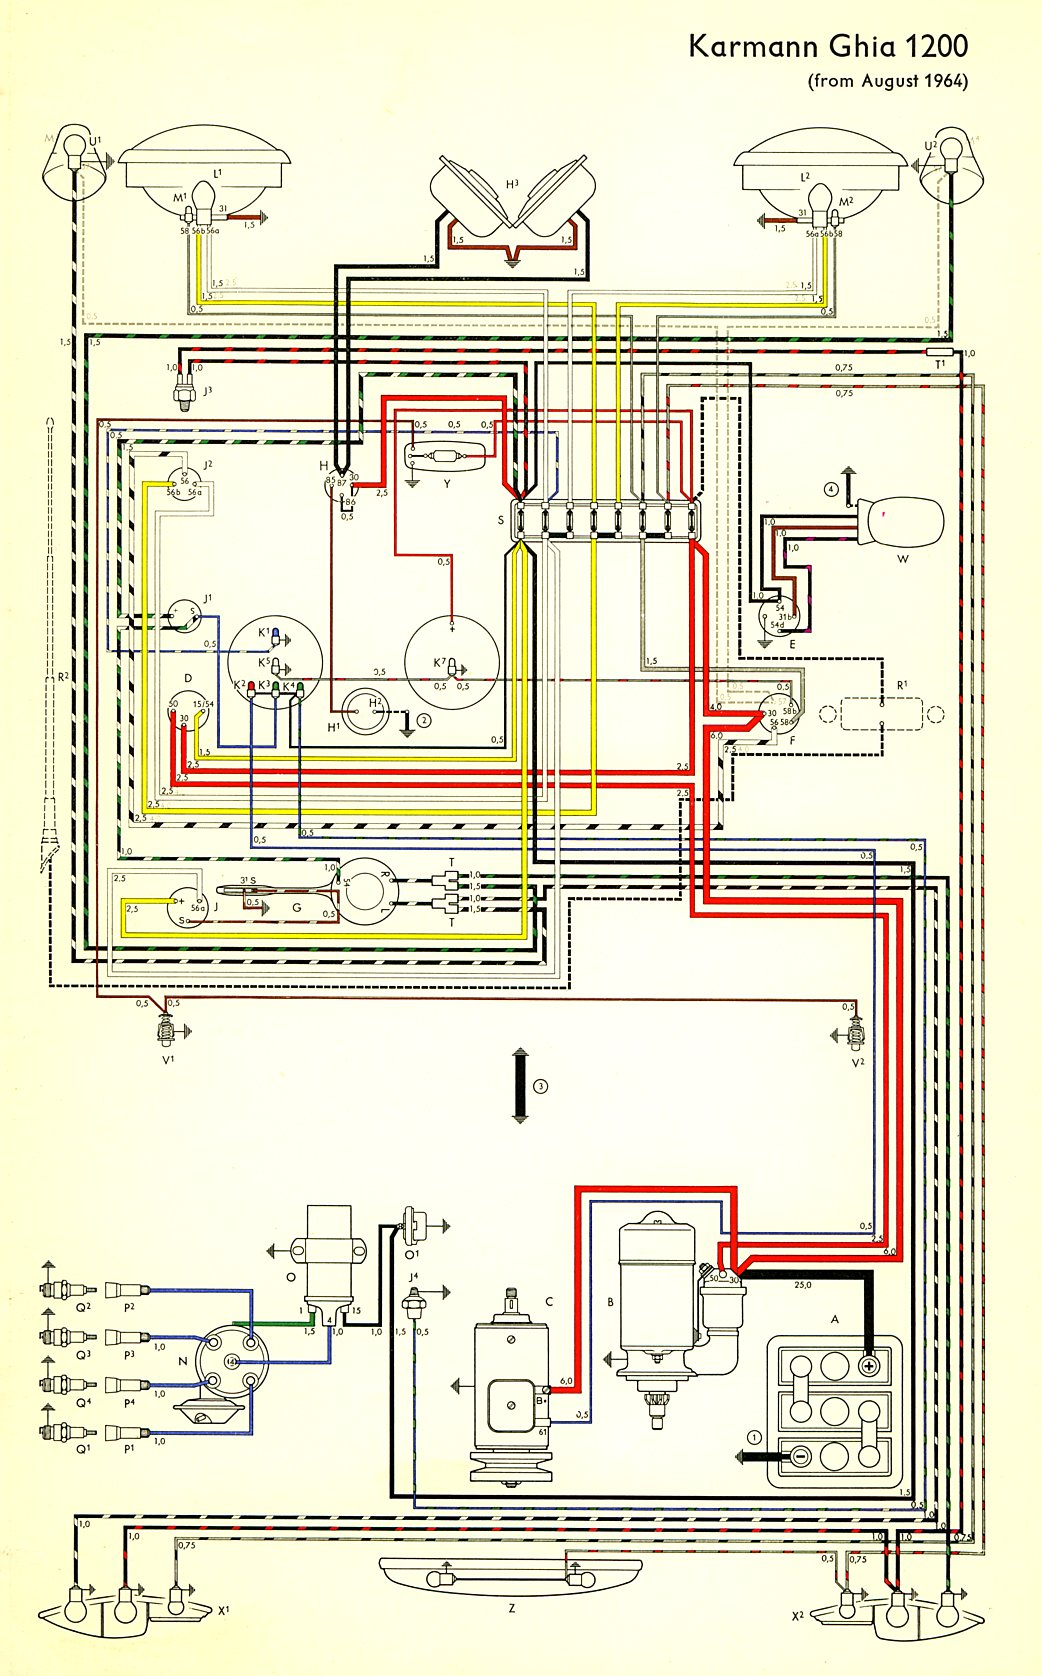 thesamba com karmann ghia wiring diagrams schematic diagram wiring diagram #19